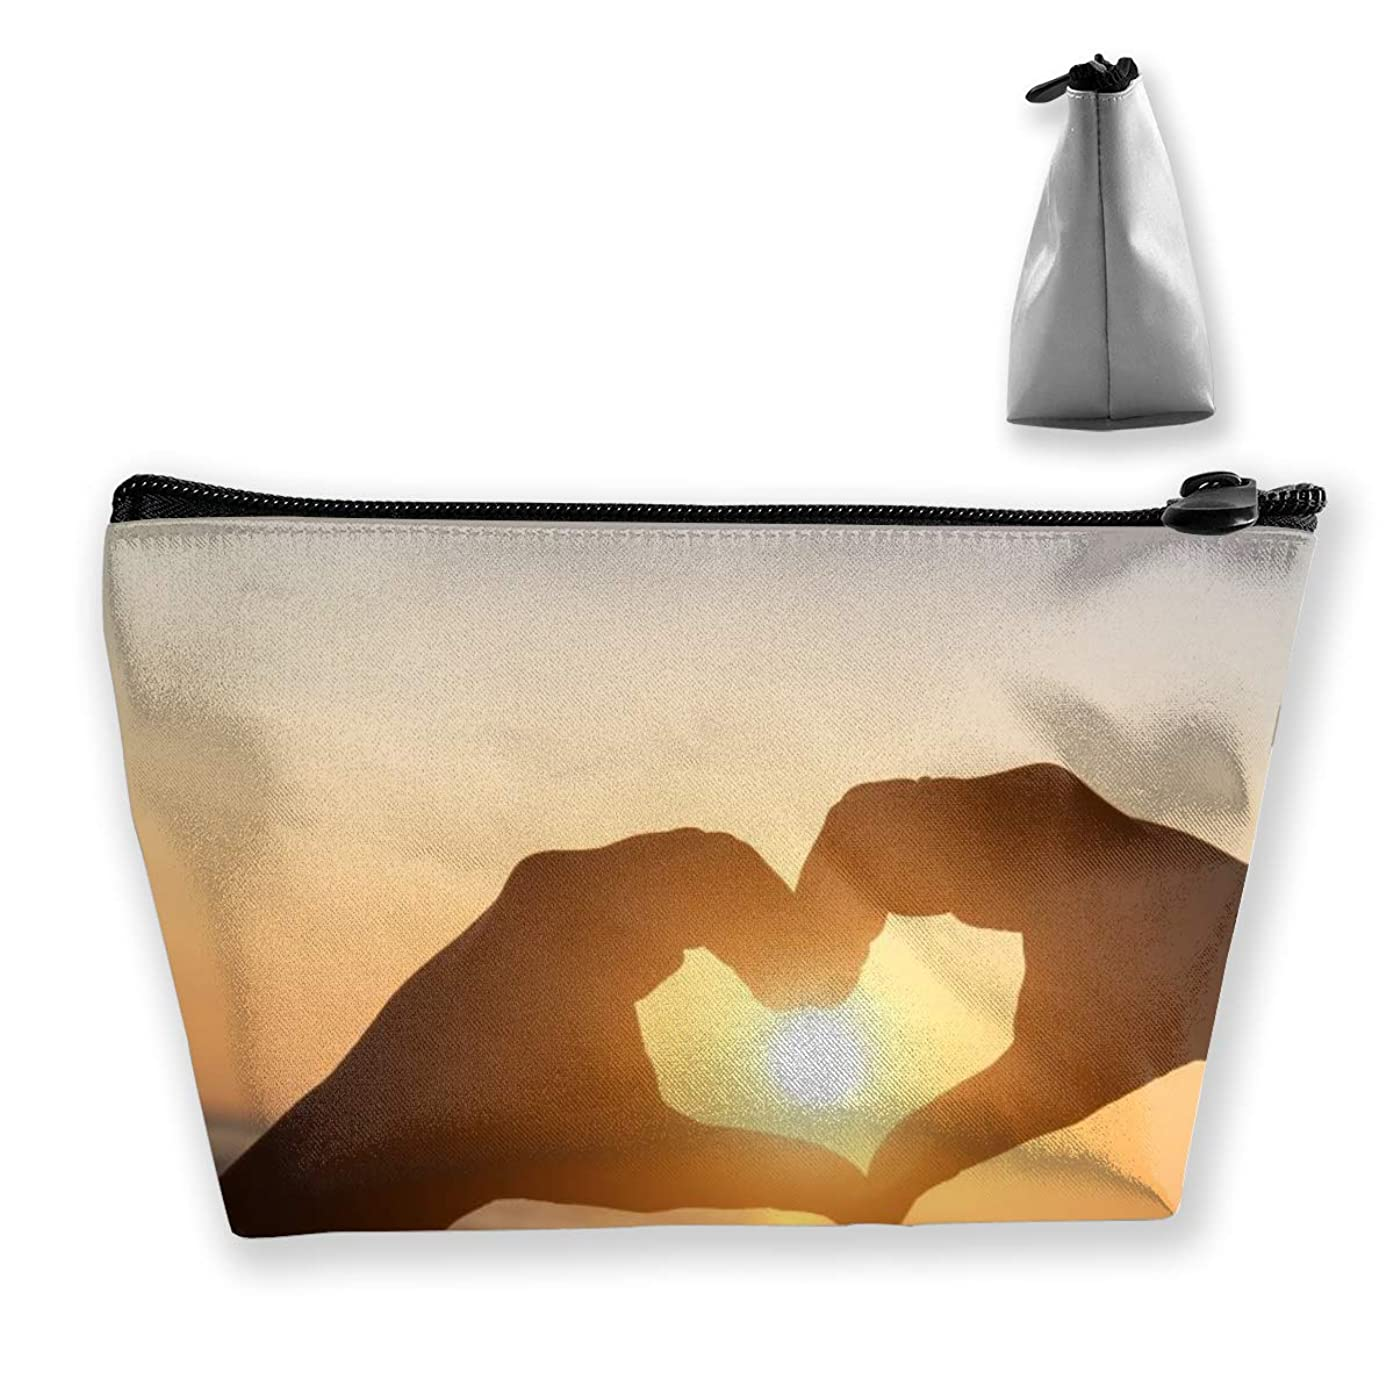 RobotDayUpUP Heart Sun Hands Silhouette Womens Travel Cosmetic Bag Portable Toiletry Brush Storage Multifunctional Pen Pencil Bags Accessories Sewing Kit Pouch Makeup Carry Case